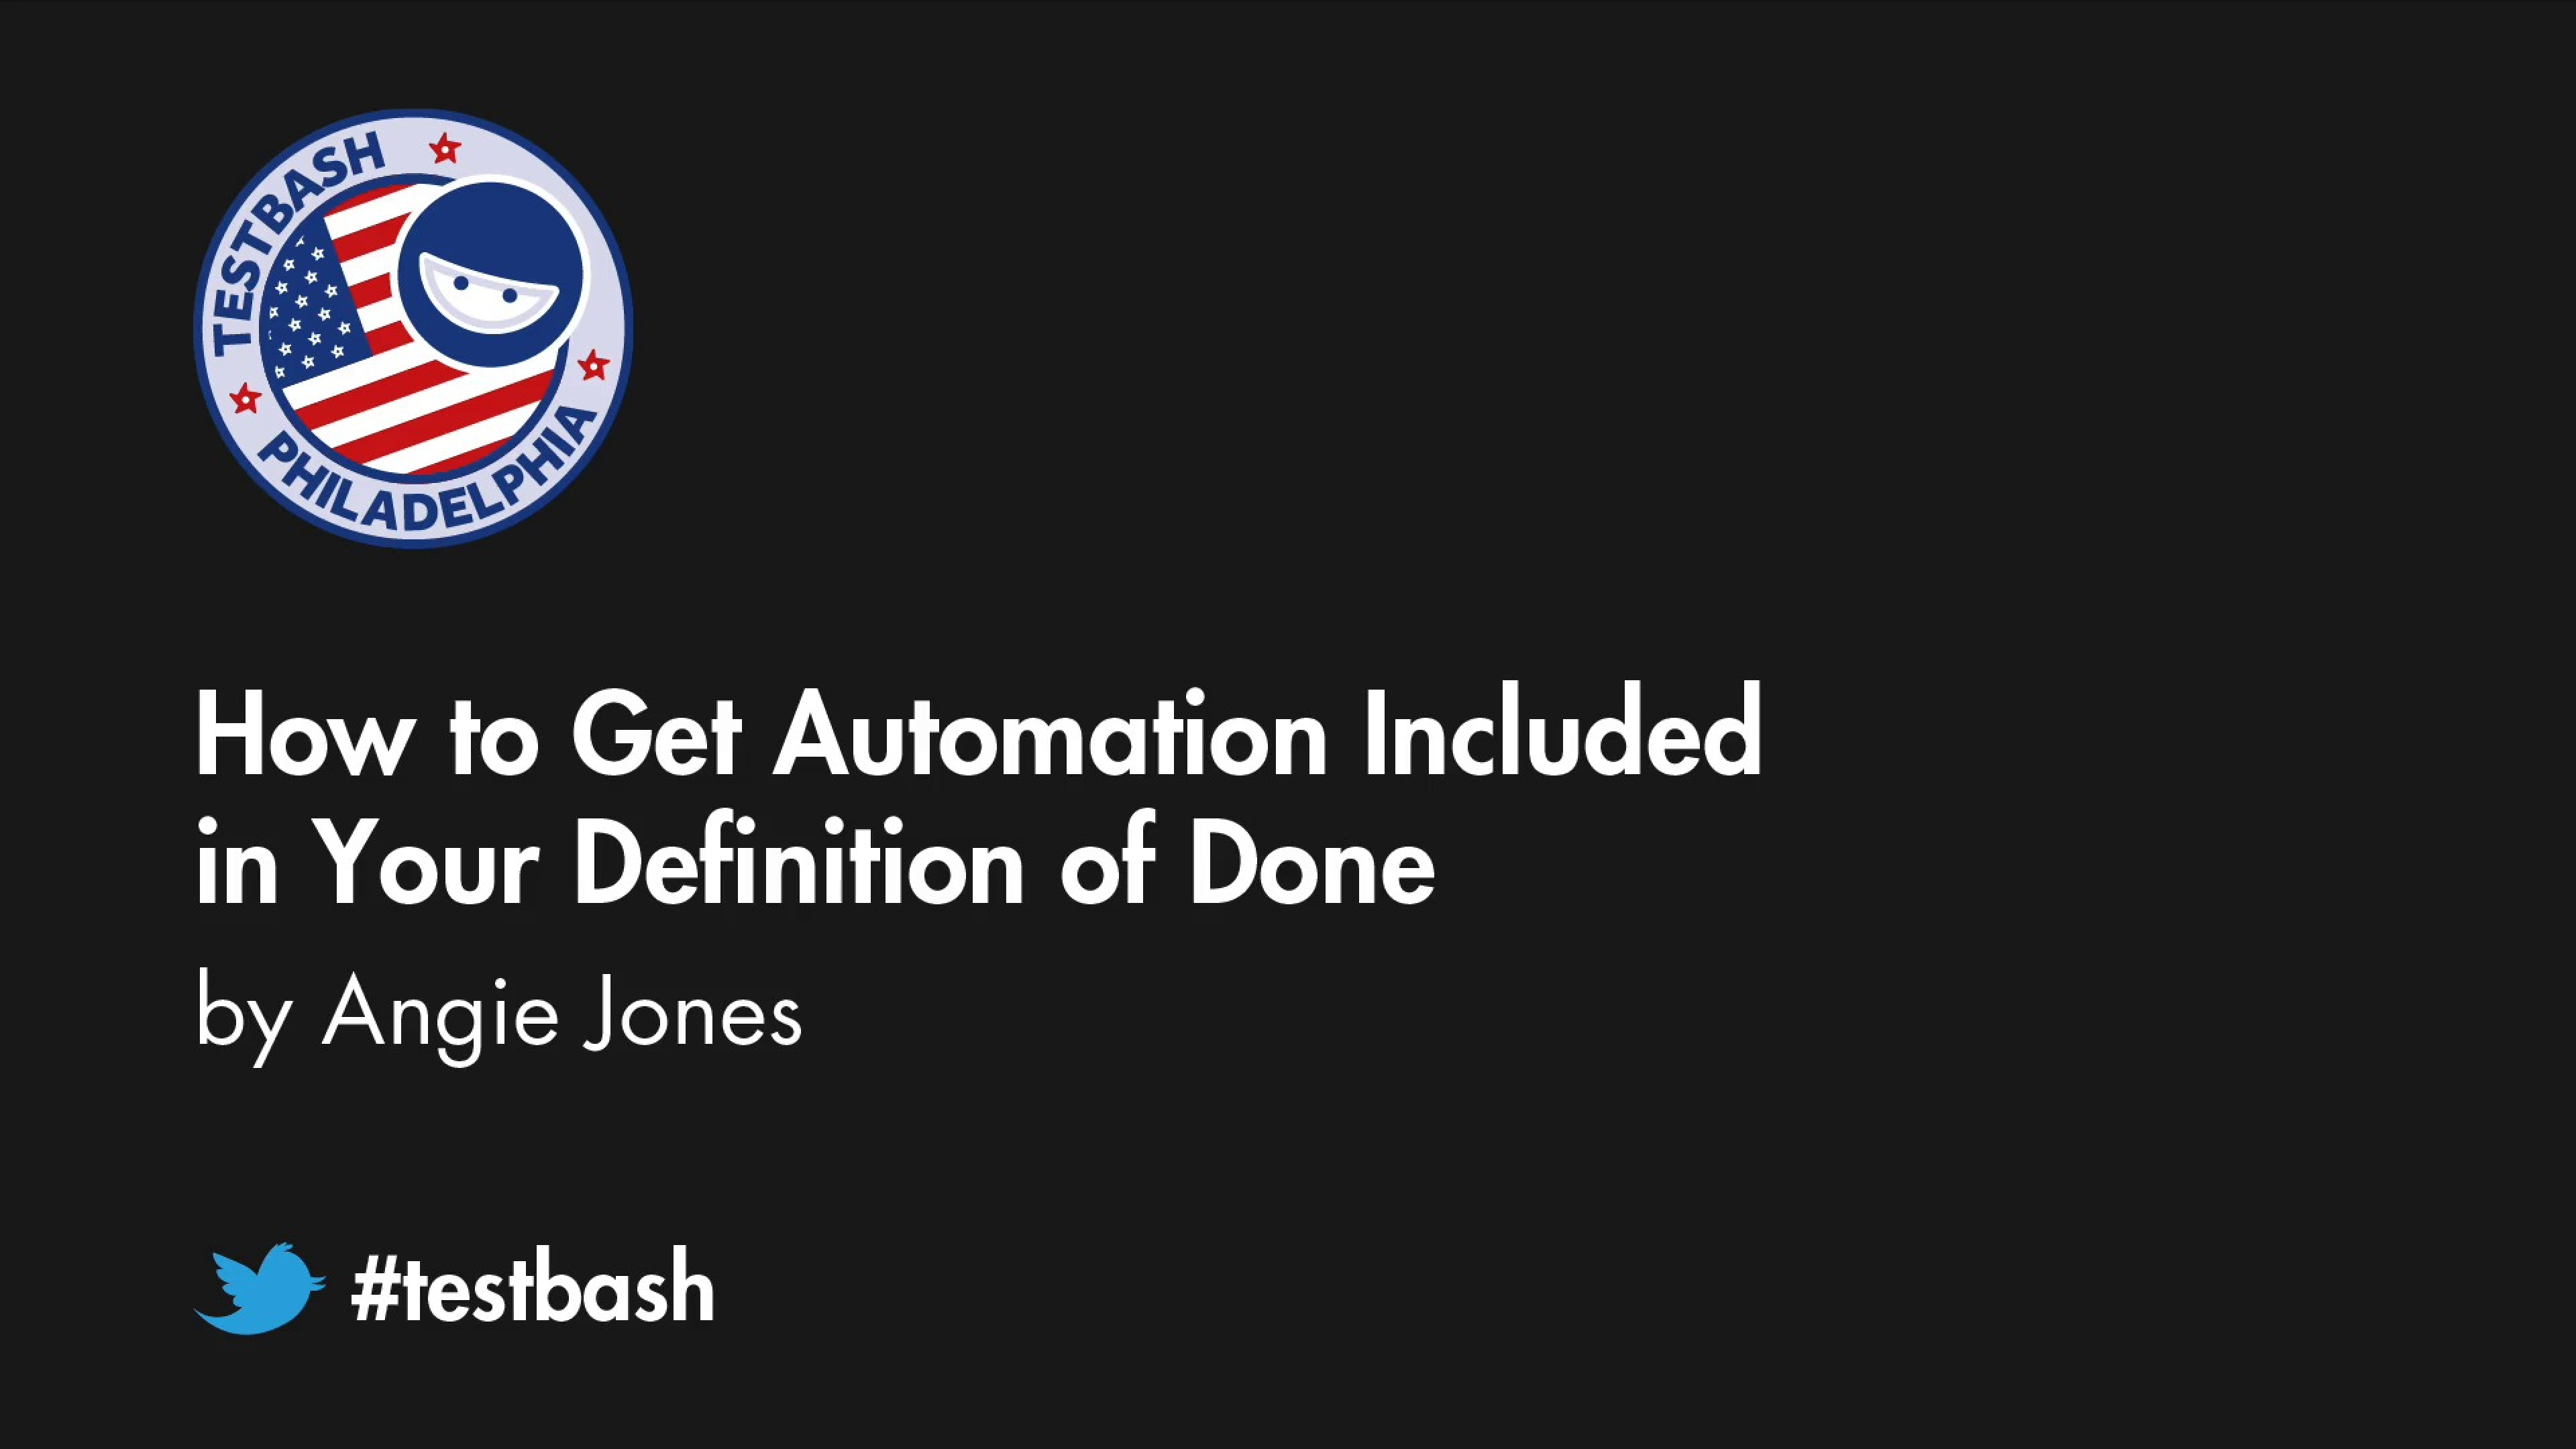 How to Get Automation Included in Your Definition of Done – Angie Jones